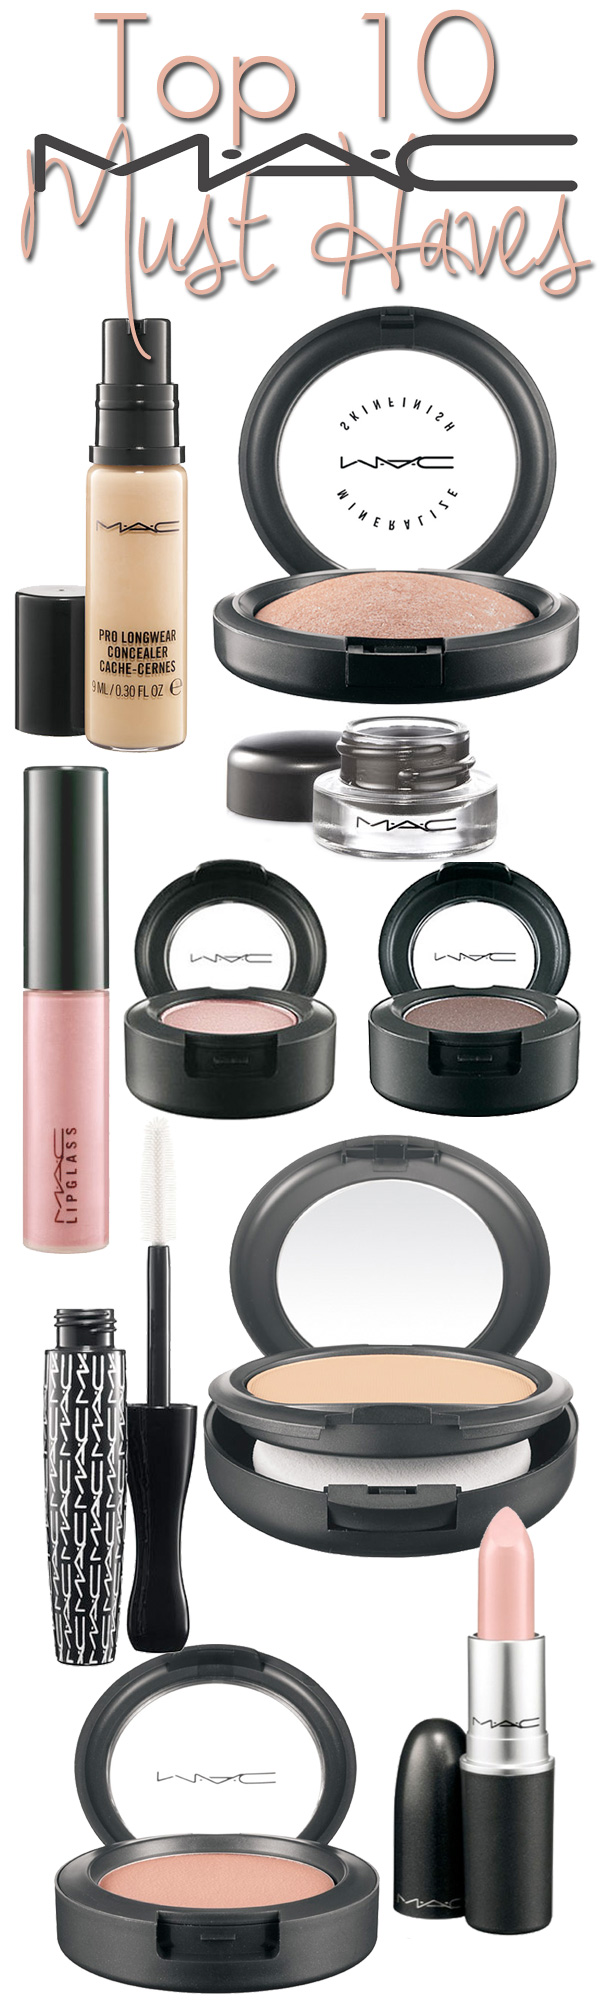 Top 10 MAC Must Haves - The MAC makeup products you need in your makeup bag.